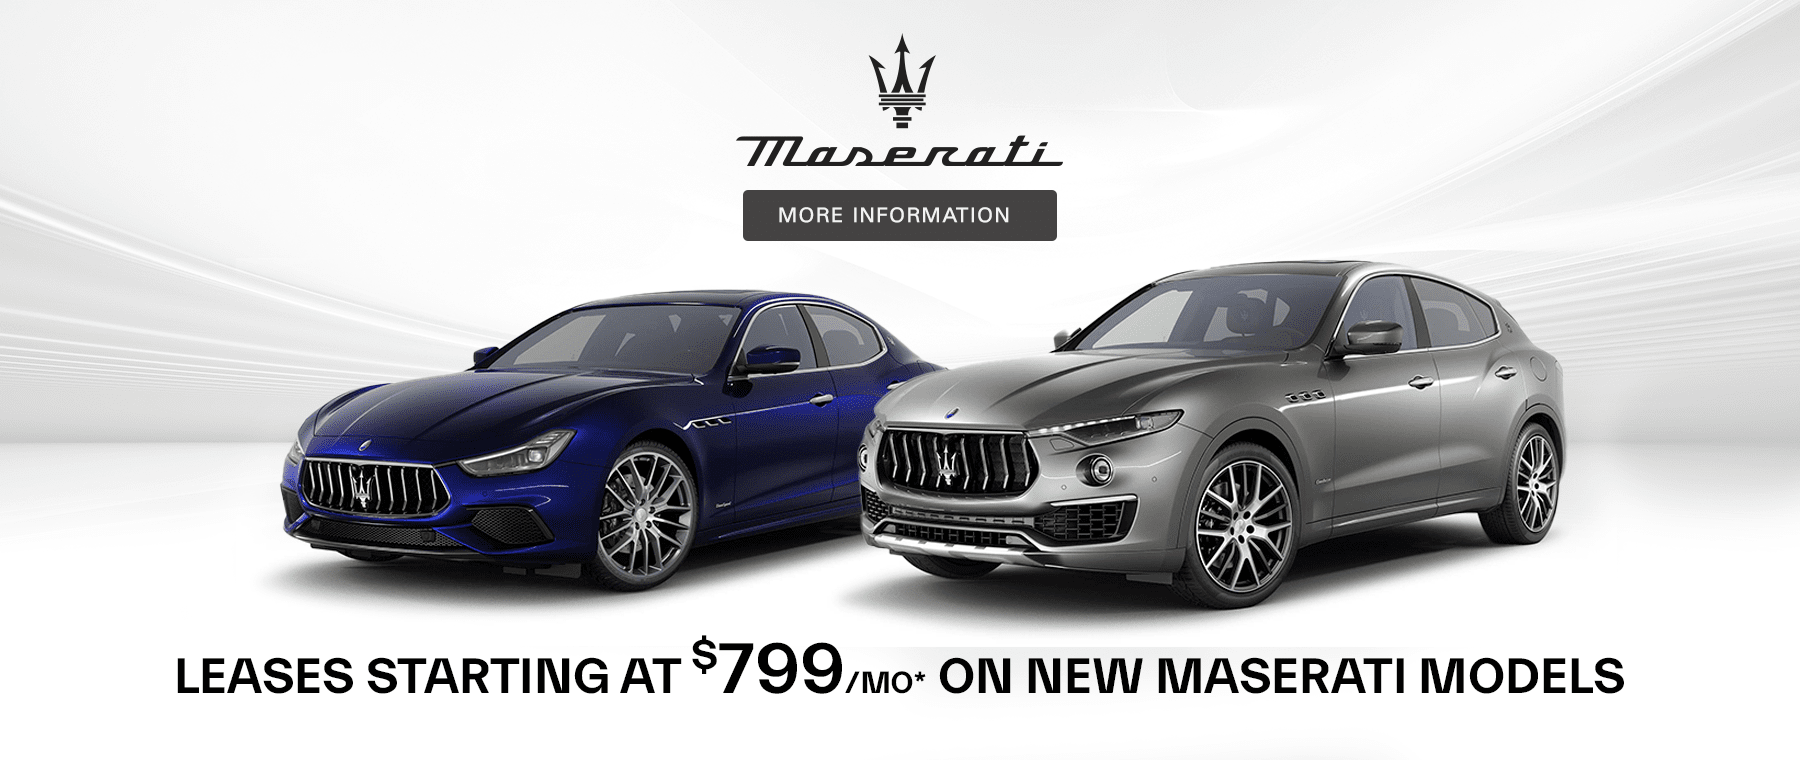 Lease a new Maserati in New York